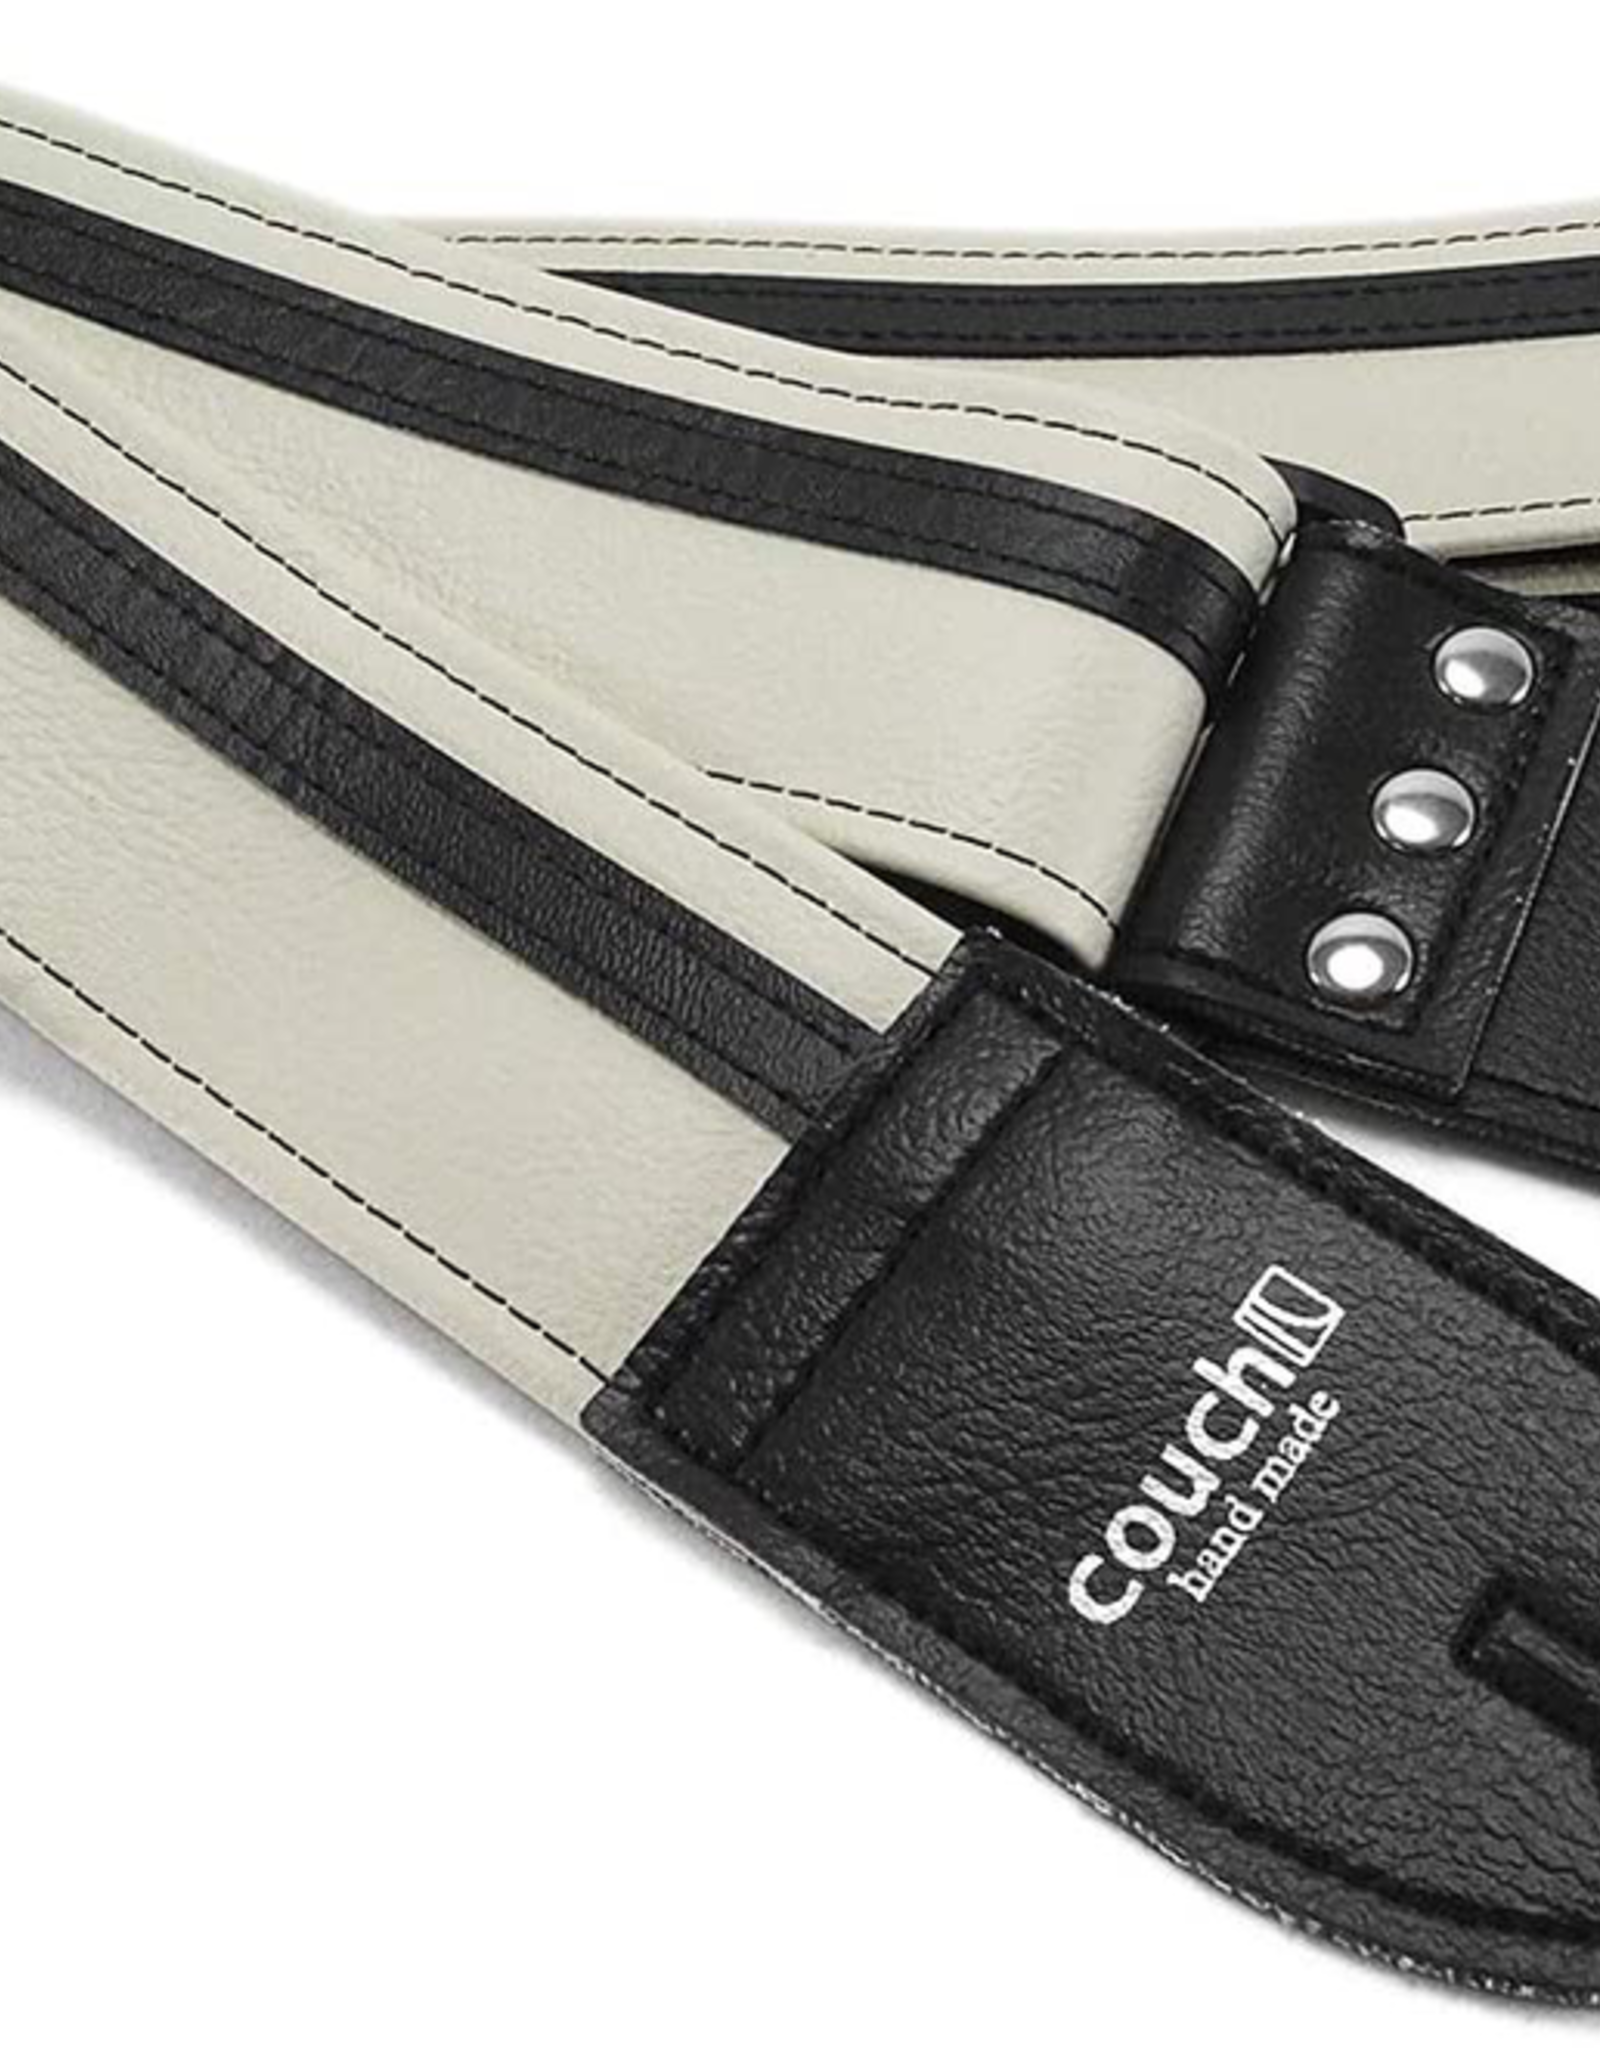 Couch Straps Couch Straps White w/ Black Racer X